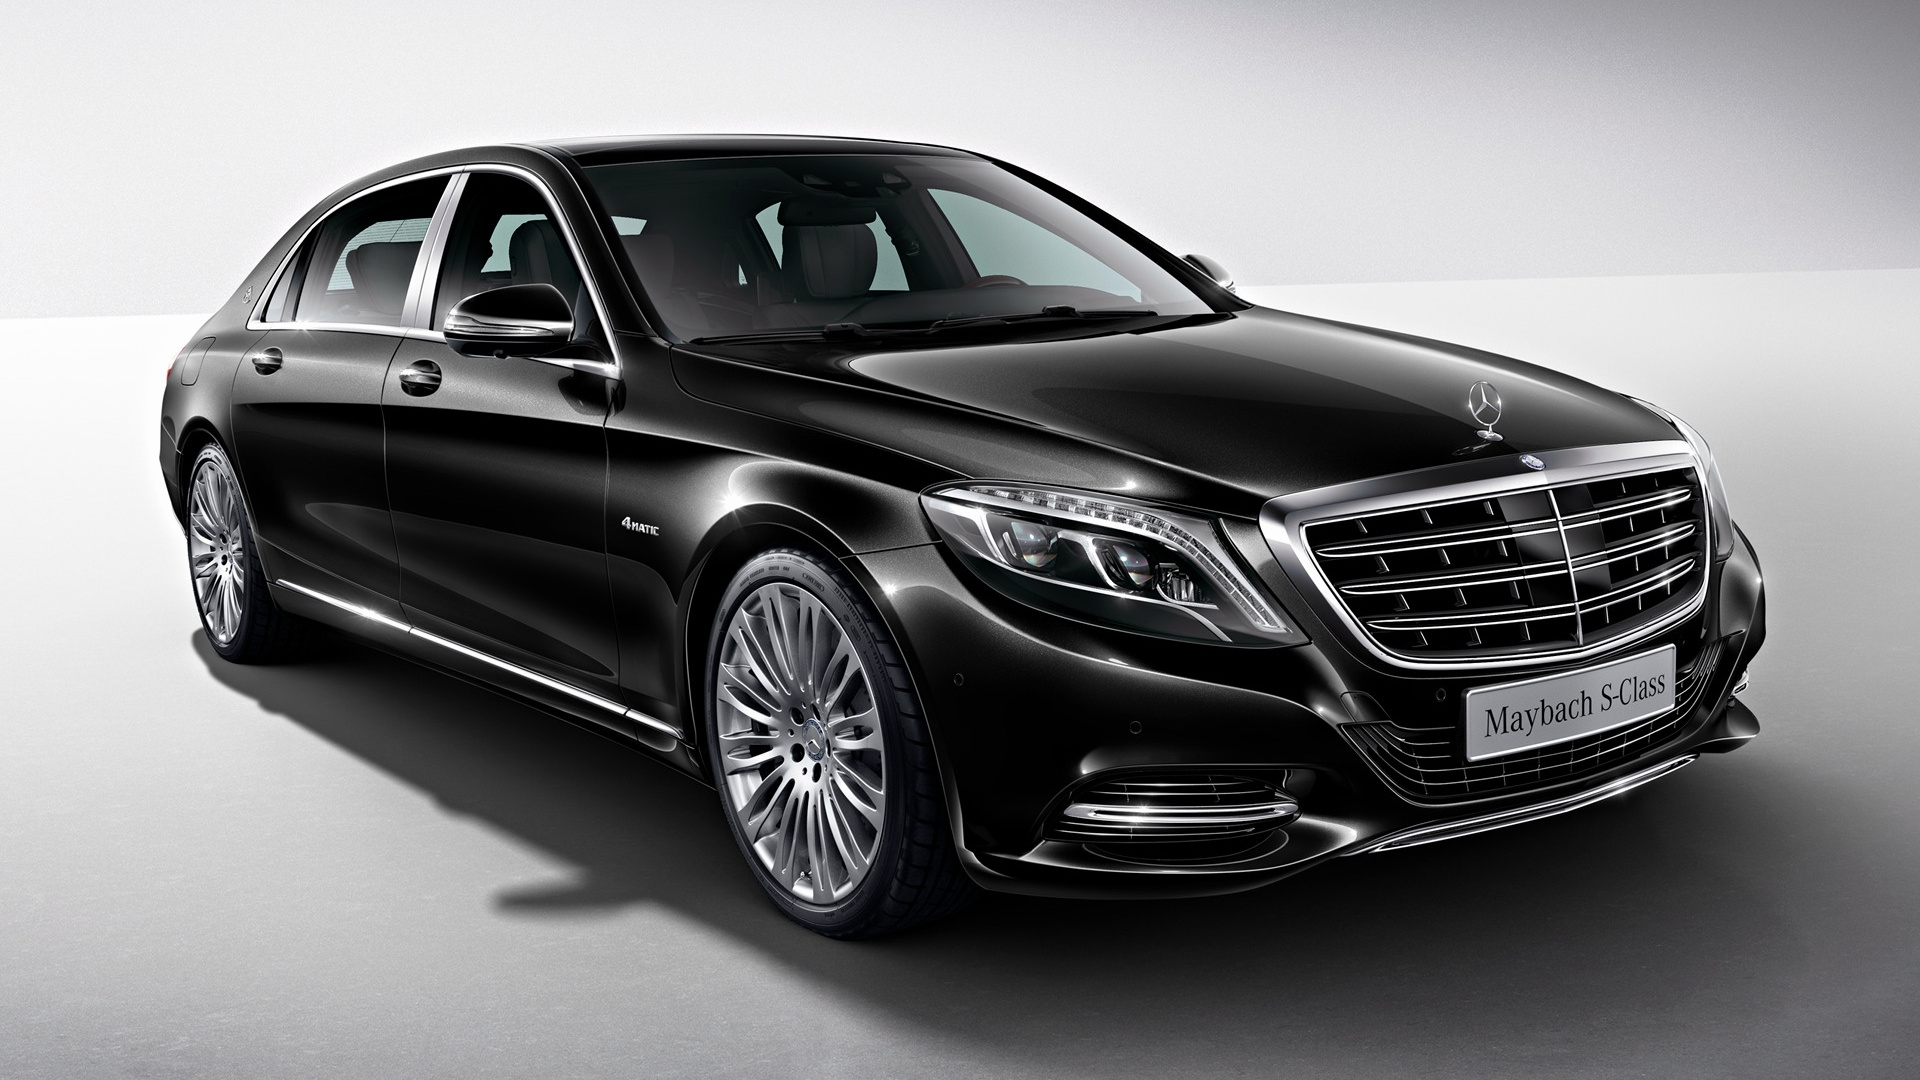 Mercedes Maybach S 500 In Munich Hire Car Rental Pd